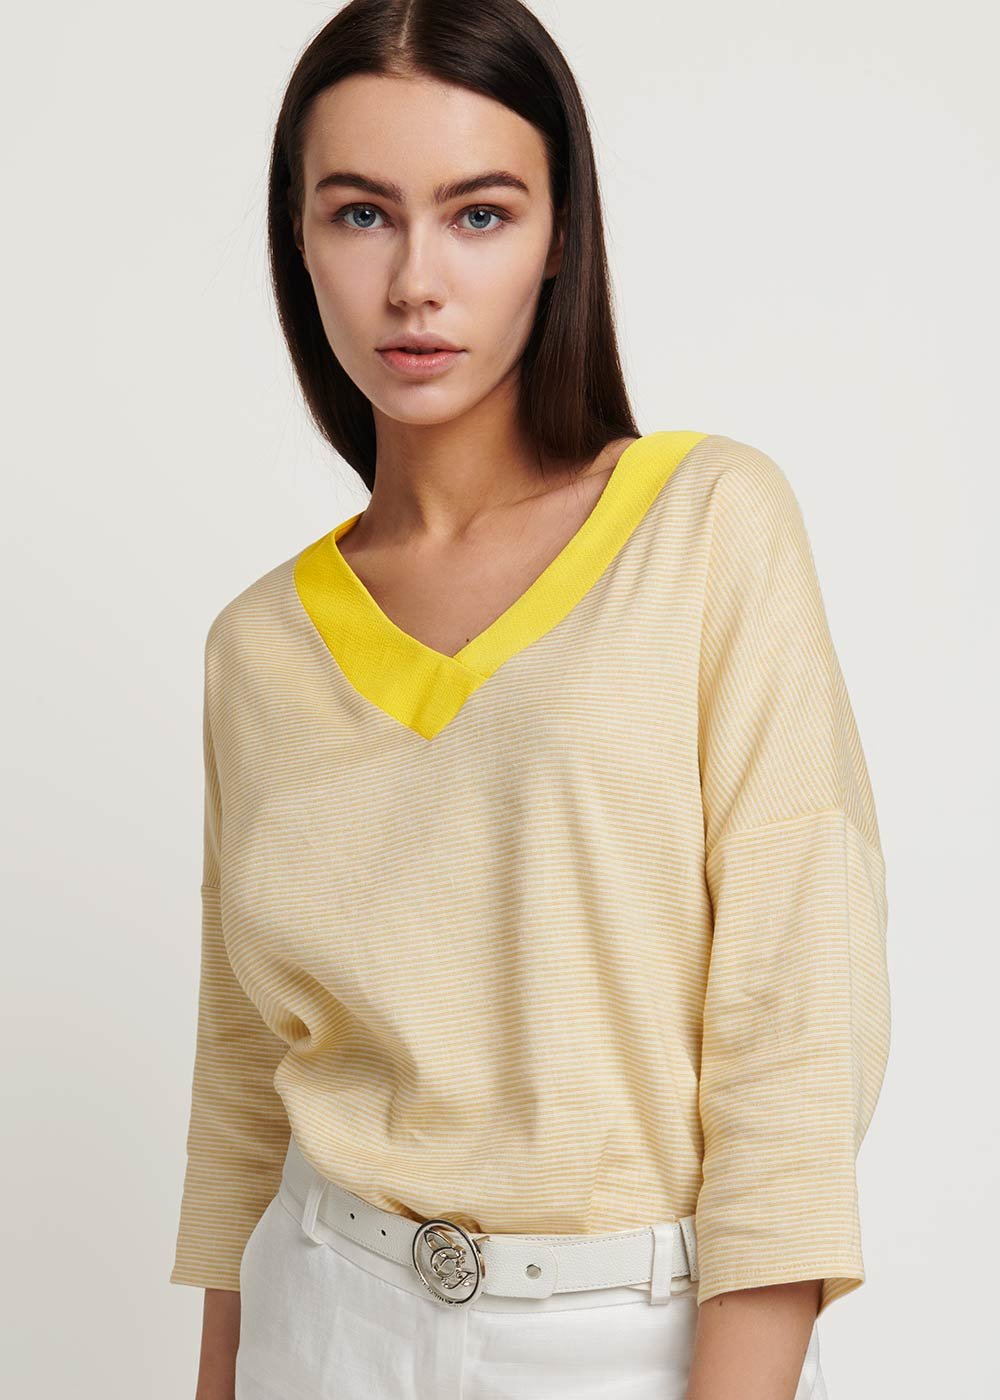 Sowd T-shirt with contrasting border - Sole \ White Stripes - Woman